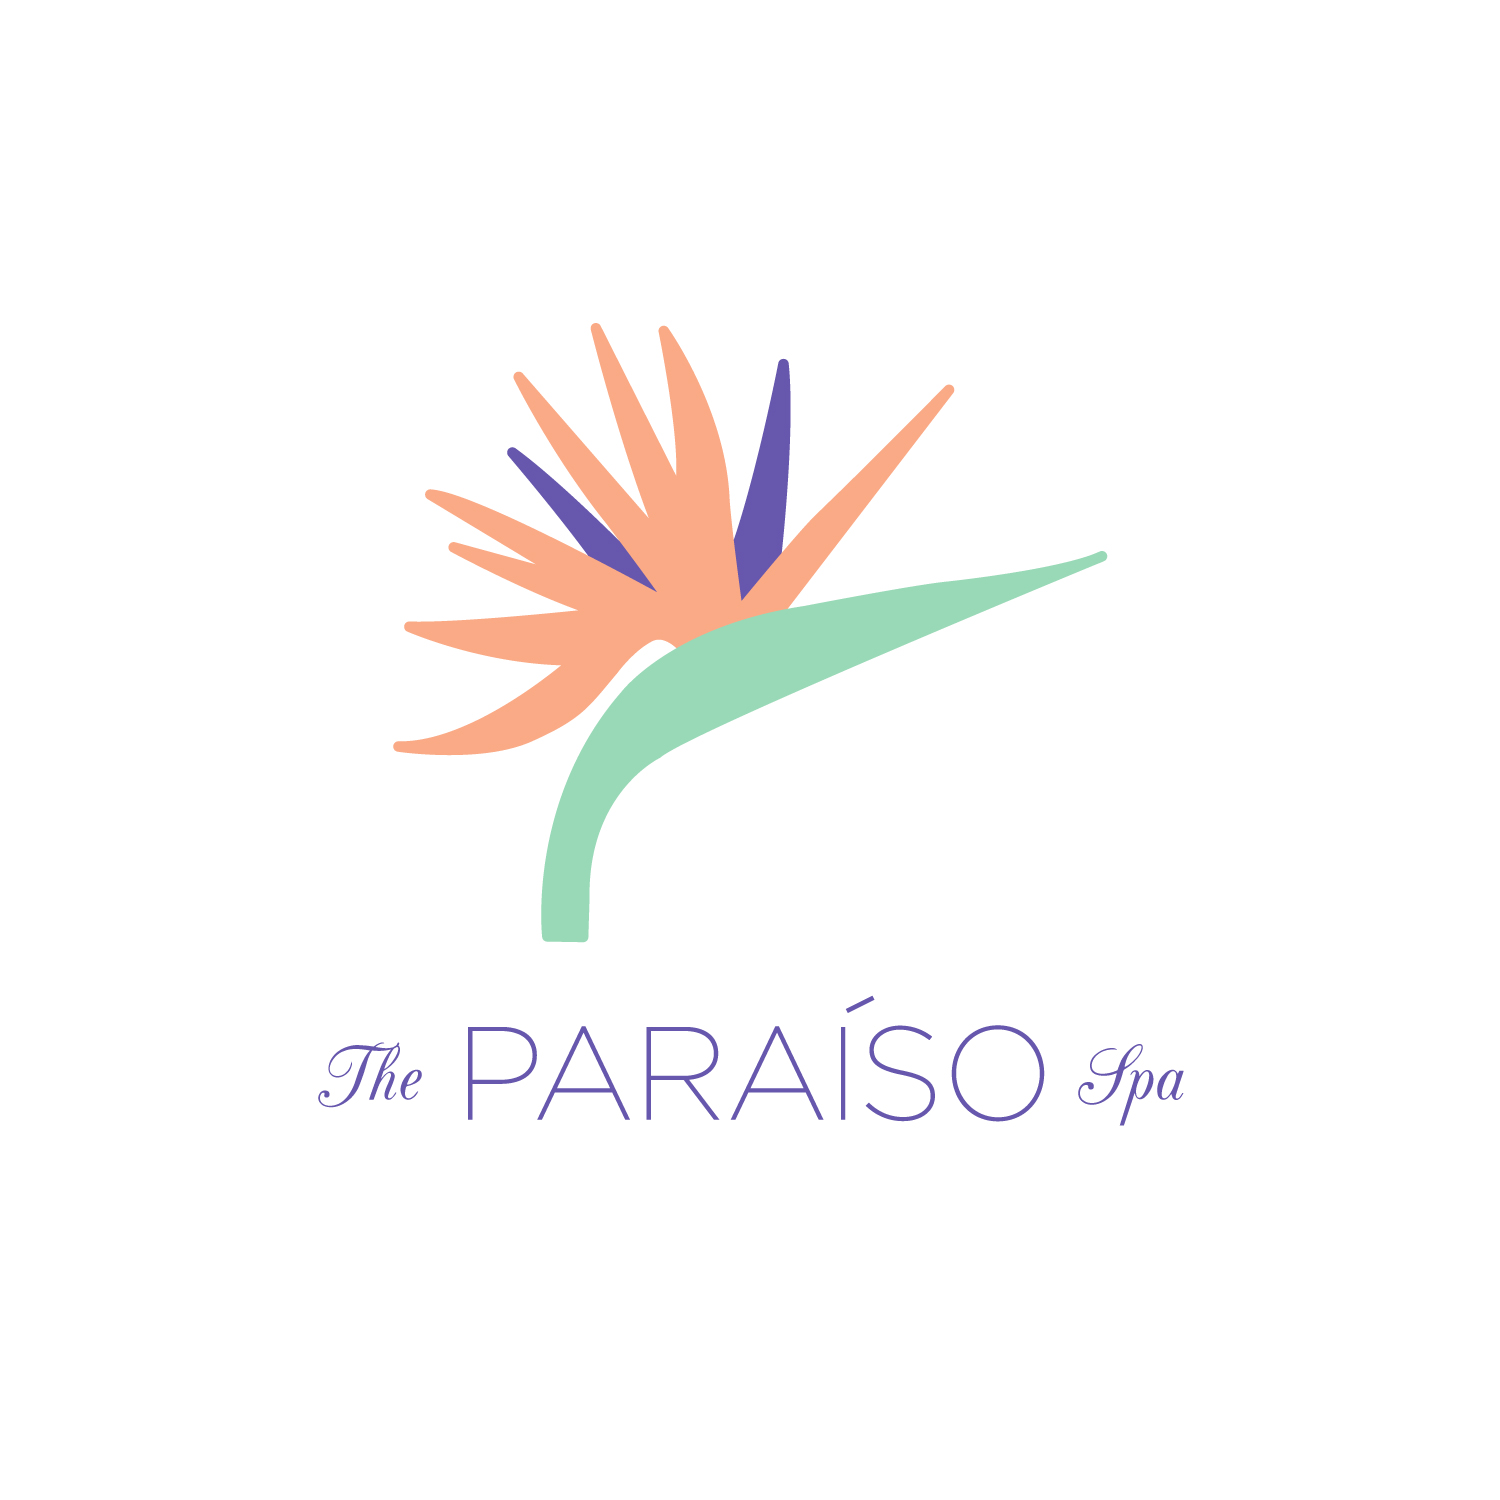 The Paraiso Spa | Logo Design | Bravebird Studio - Branding & Web Design